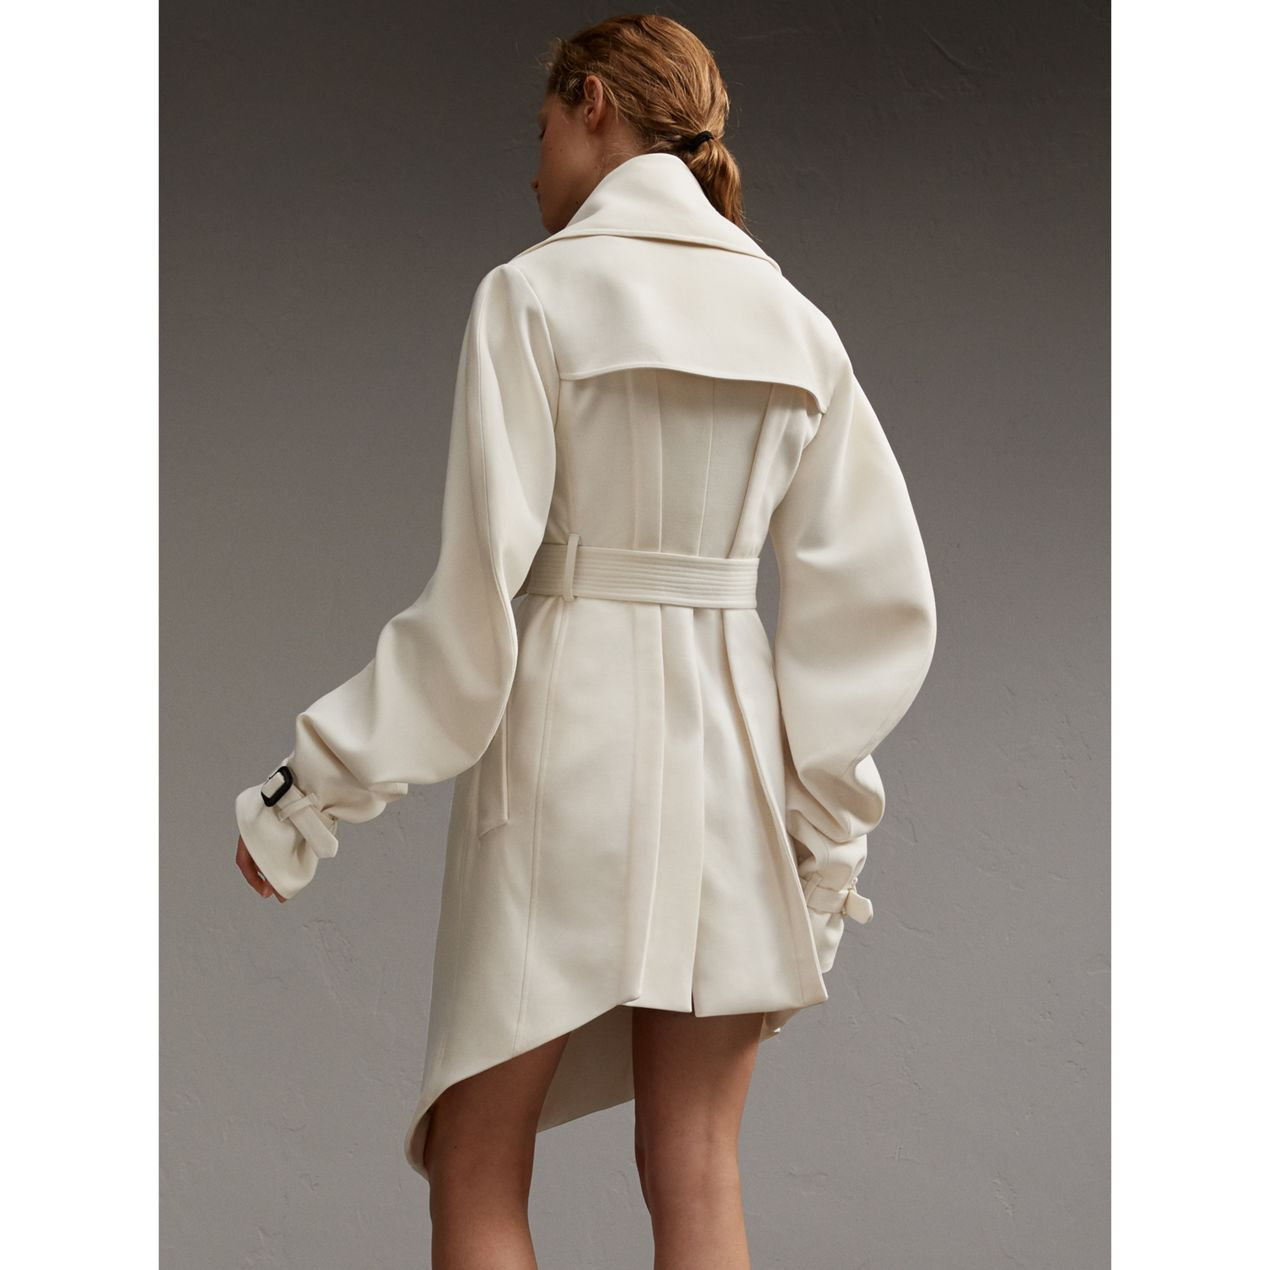 Burberry-white-coat-beyonce1